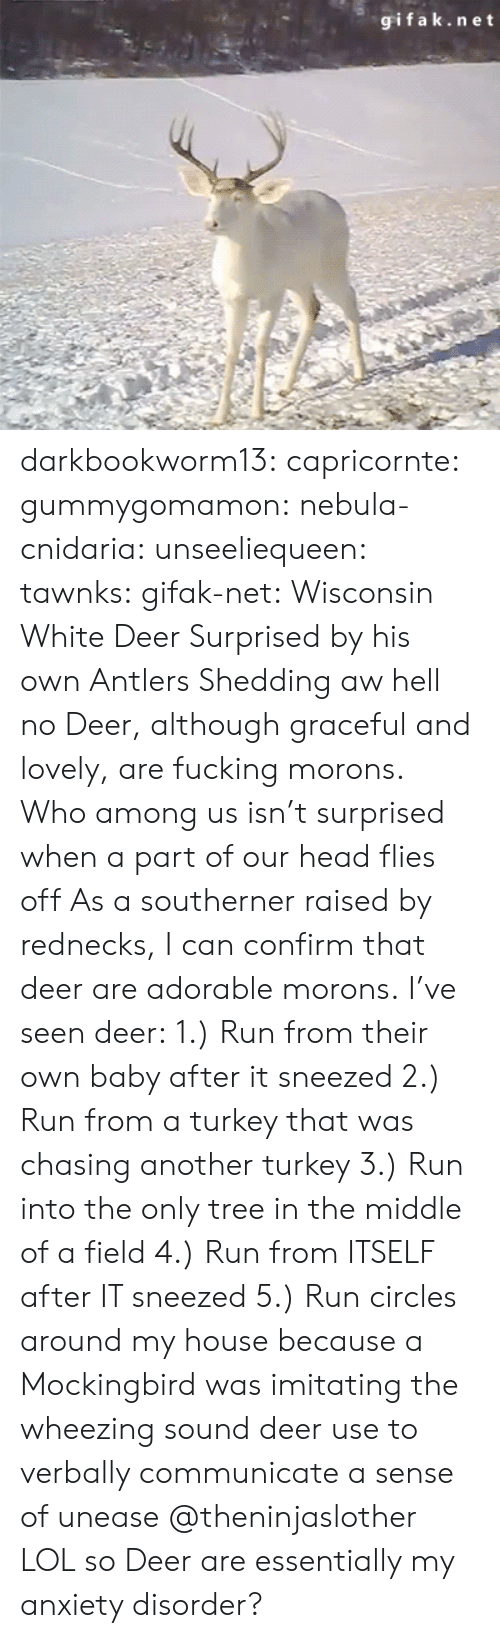 Gifak Net: gifak.net darkbookworm13:  capricornte:  gummygomamon:  nebula-cnidaria:  unseeliequeen:  tawnks:  gifak-net:  Wisconsin White Deer Surprised by his own Antlers Shedding   aw hell no  Deer, although graceful and lovely, are fucking morons.   Who among us isn't surprised when a part of our head flies off   As a southerner raised by rednecks, I can confirm that deer are adorable morons. I've seen deer: 1.) Run from their own baby after it sneezed 2.) Run from a turkey that was chasing another turkey 3.) Run into the only tree in the middle of a field 4.) Run from ITSELF after IT sneezed 5.) Run circles around my house because a Mockingbird was imitating the  wheezing sound deer use to verbally communicate a sense of unease   @theninjaslother  LOL so Deer are essentially my anxiety disorder?